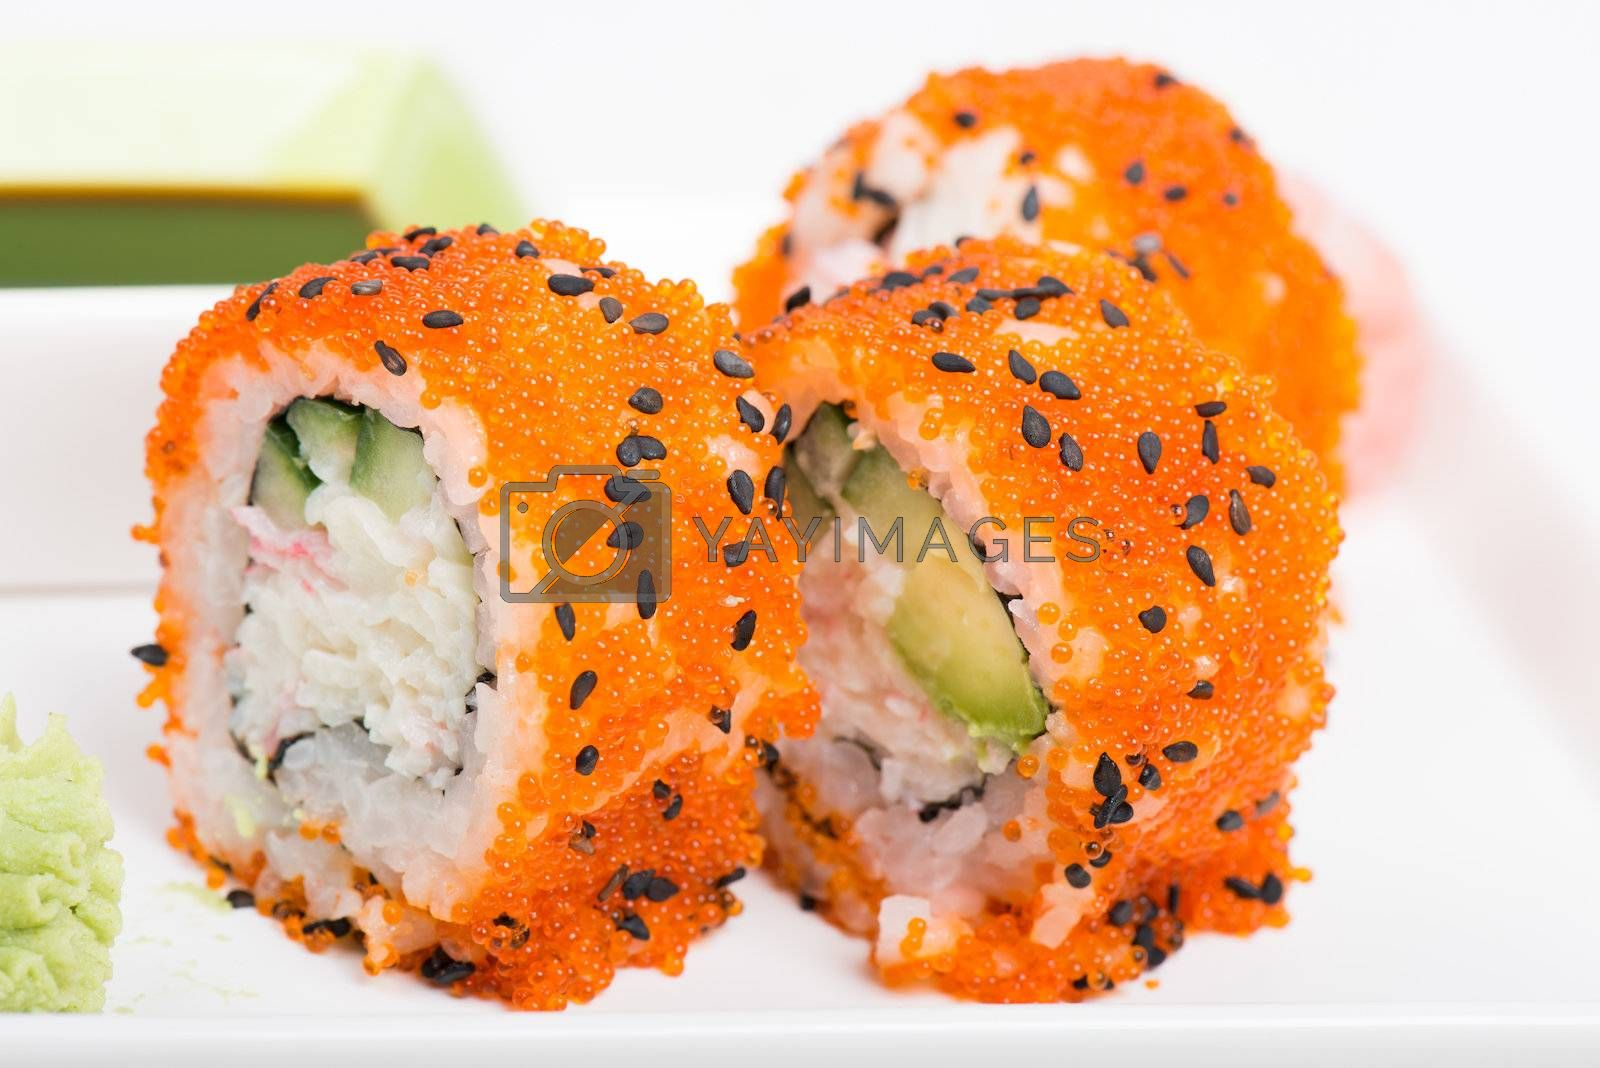 Sushi rolls with orange tobico on the plate